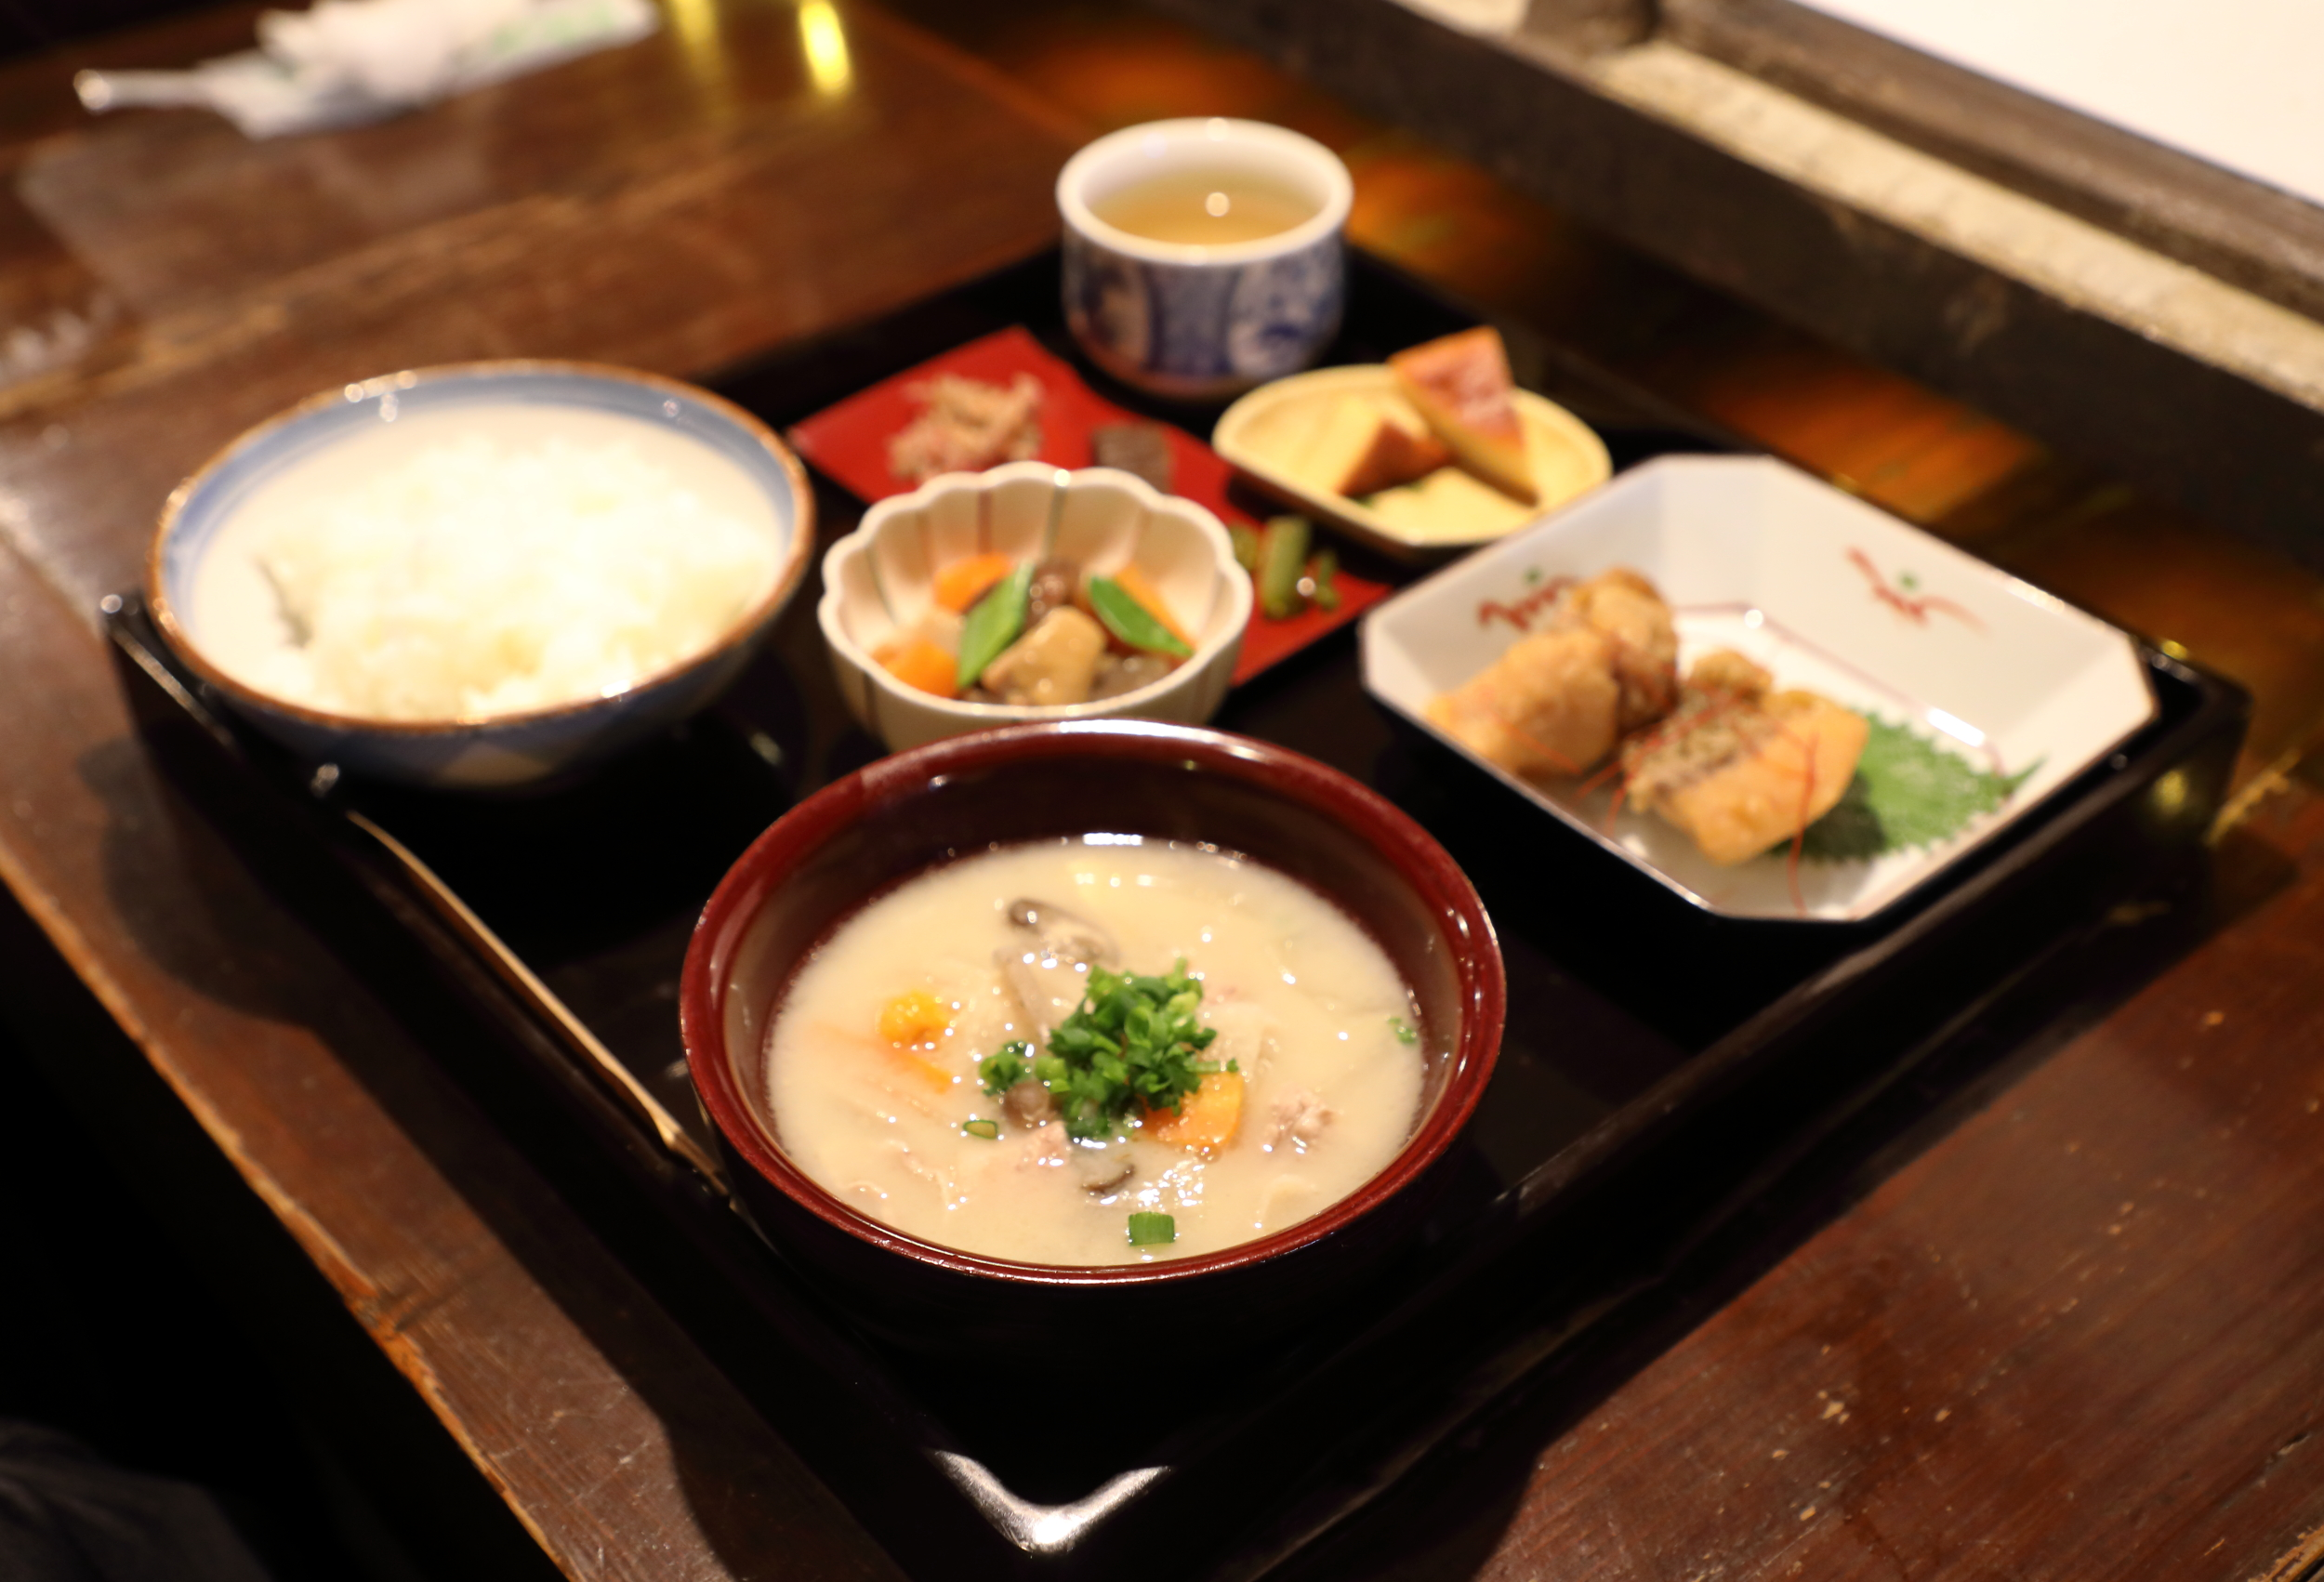 In the brown bowl  kasu-jiro  is a rich, slightly sweet stew made with  sake kasu  and either pork or salmon and vegetables.